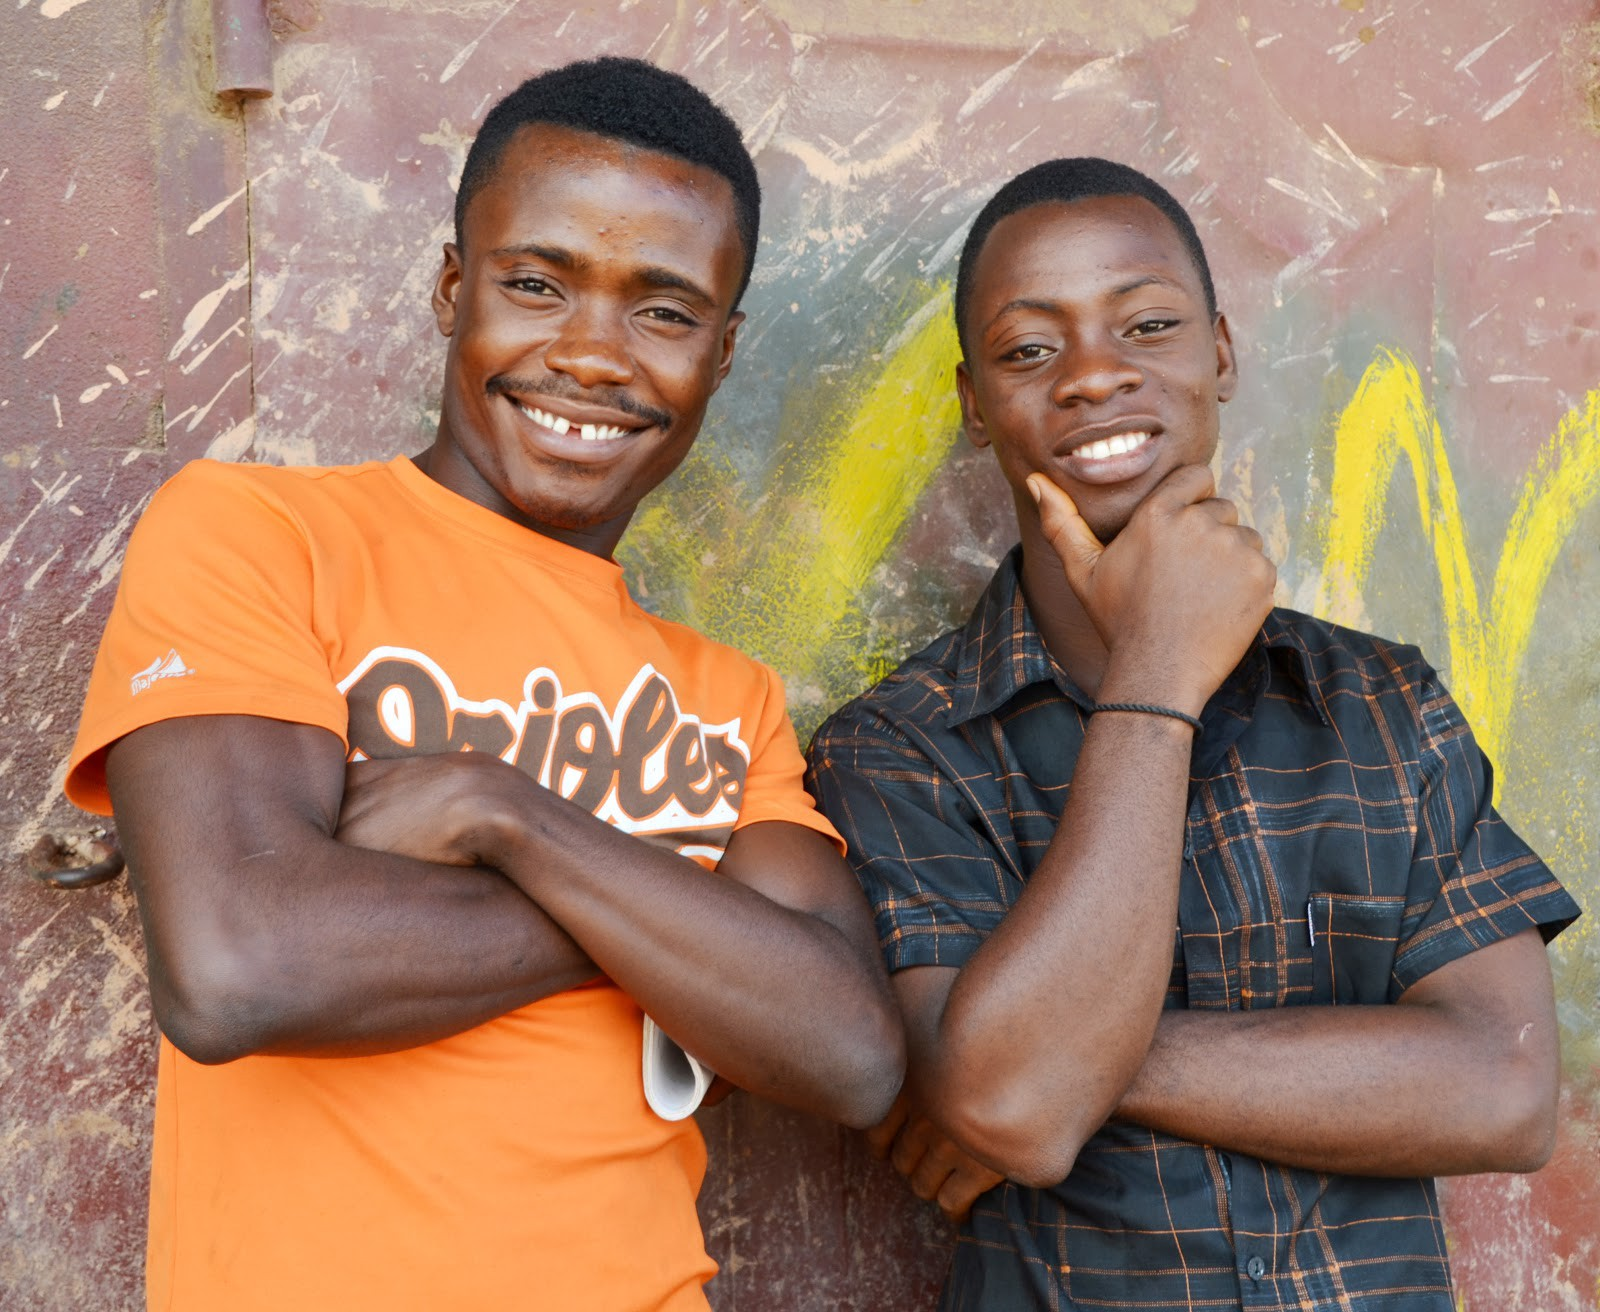 From left: Thomas Sieh and Milton Karmen, who both lost parents to Ebola are now off the streets in Doe Community, Liberia, back in school, and finding new hope for the future with the help of USAID-supported counseling and mentoring. / Jessica Benton Cooney, USAID